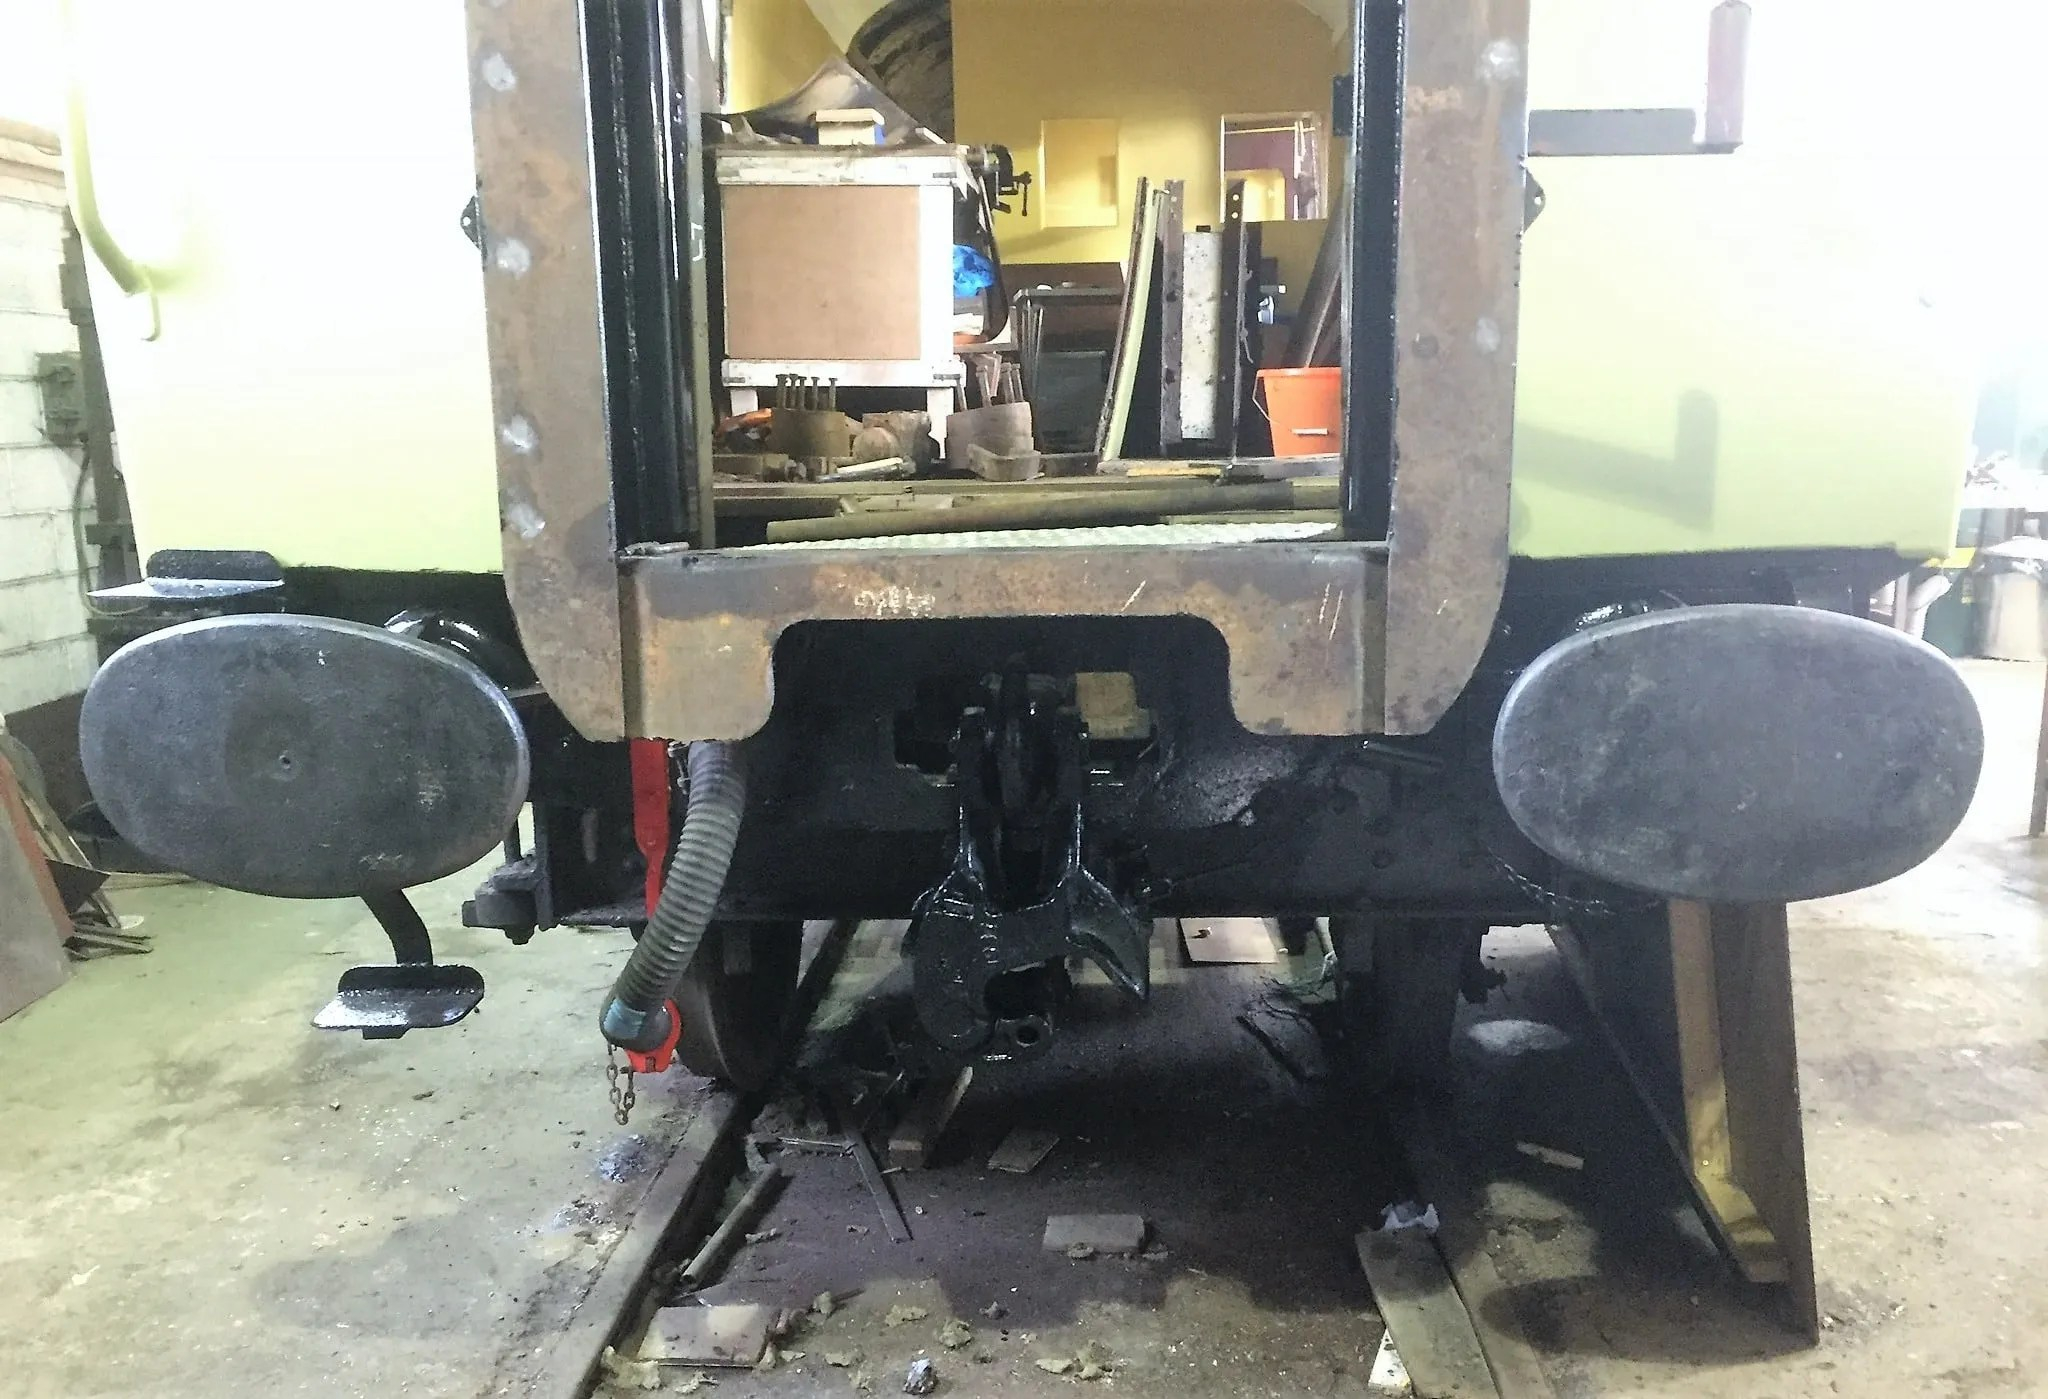 Newly fitted gangway being supported on plungers and newly painted Buckeye coupler as part of Mark 1 carriage restoration